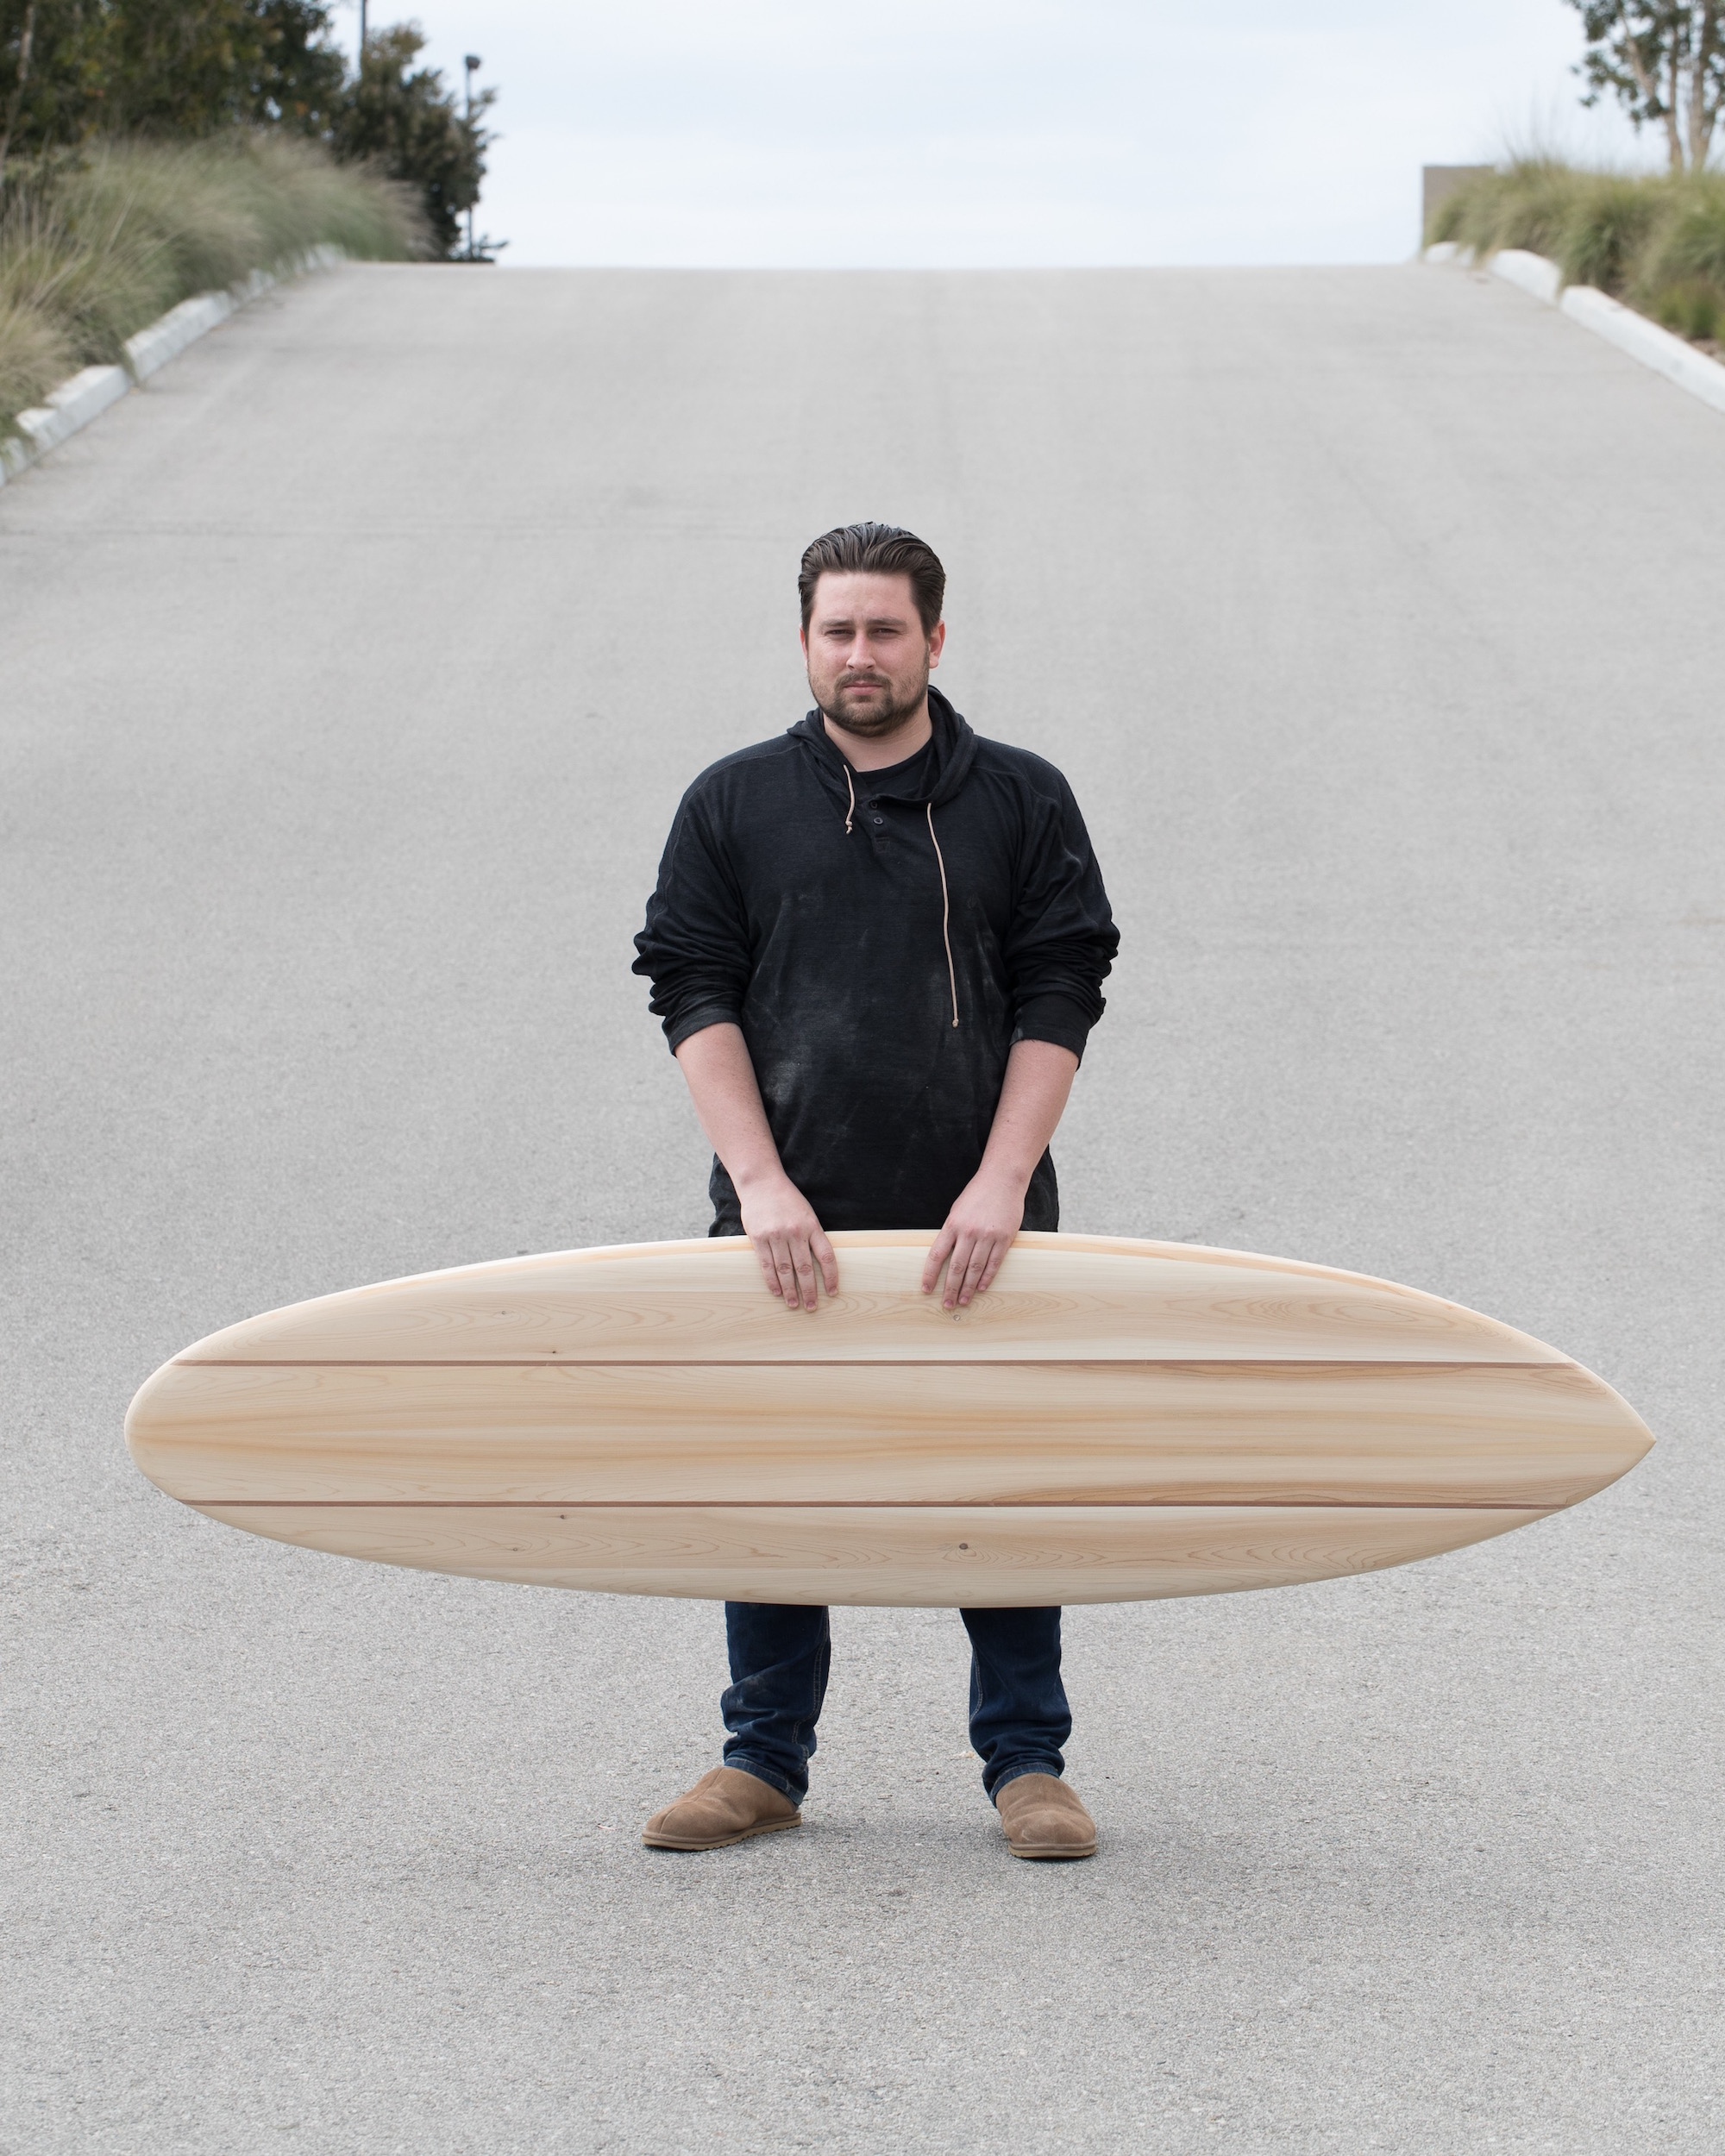 Peter poses with his Seed Singlefin surfboard.